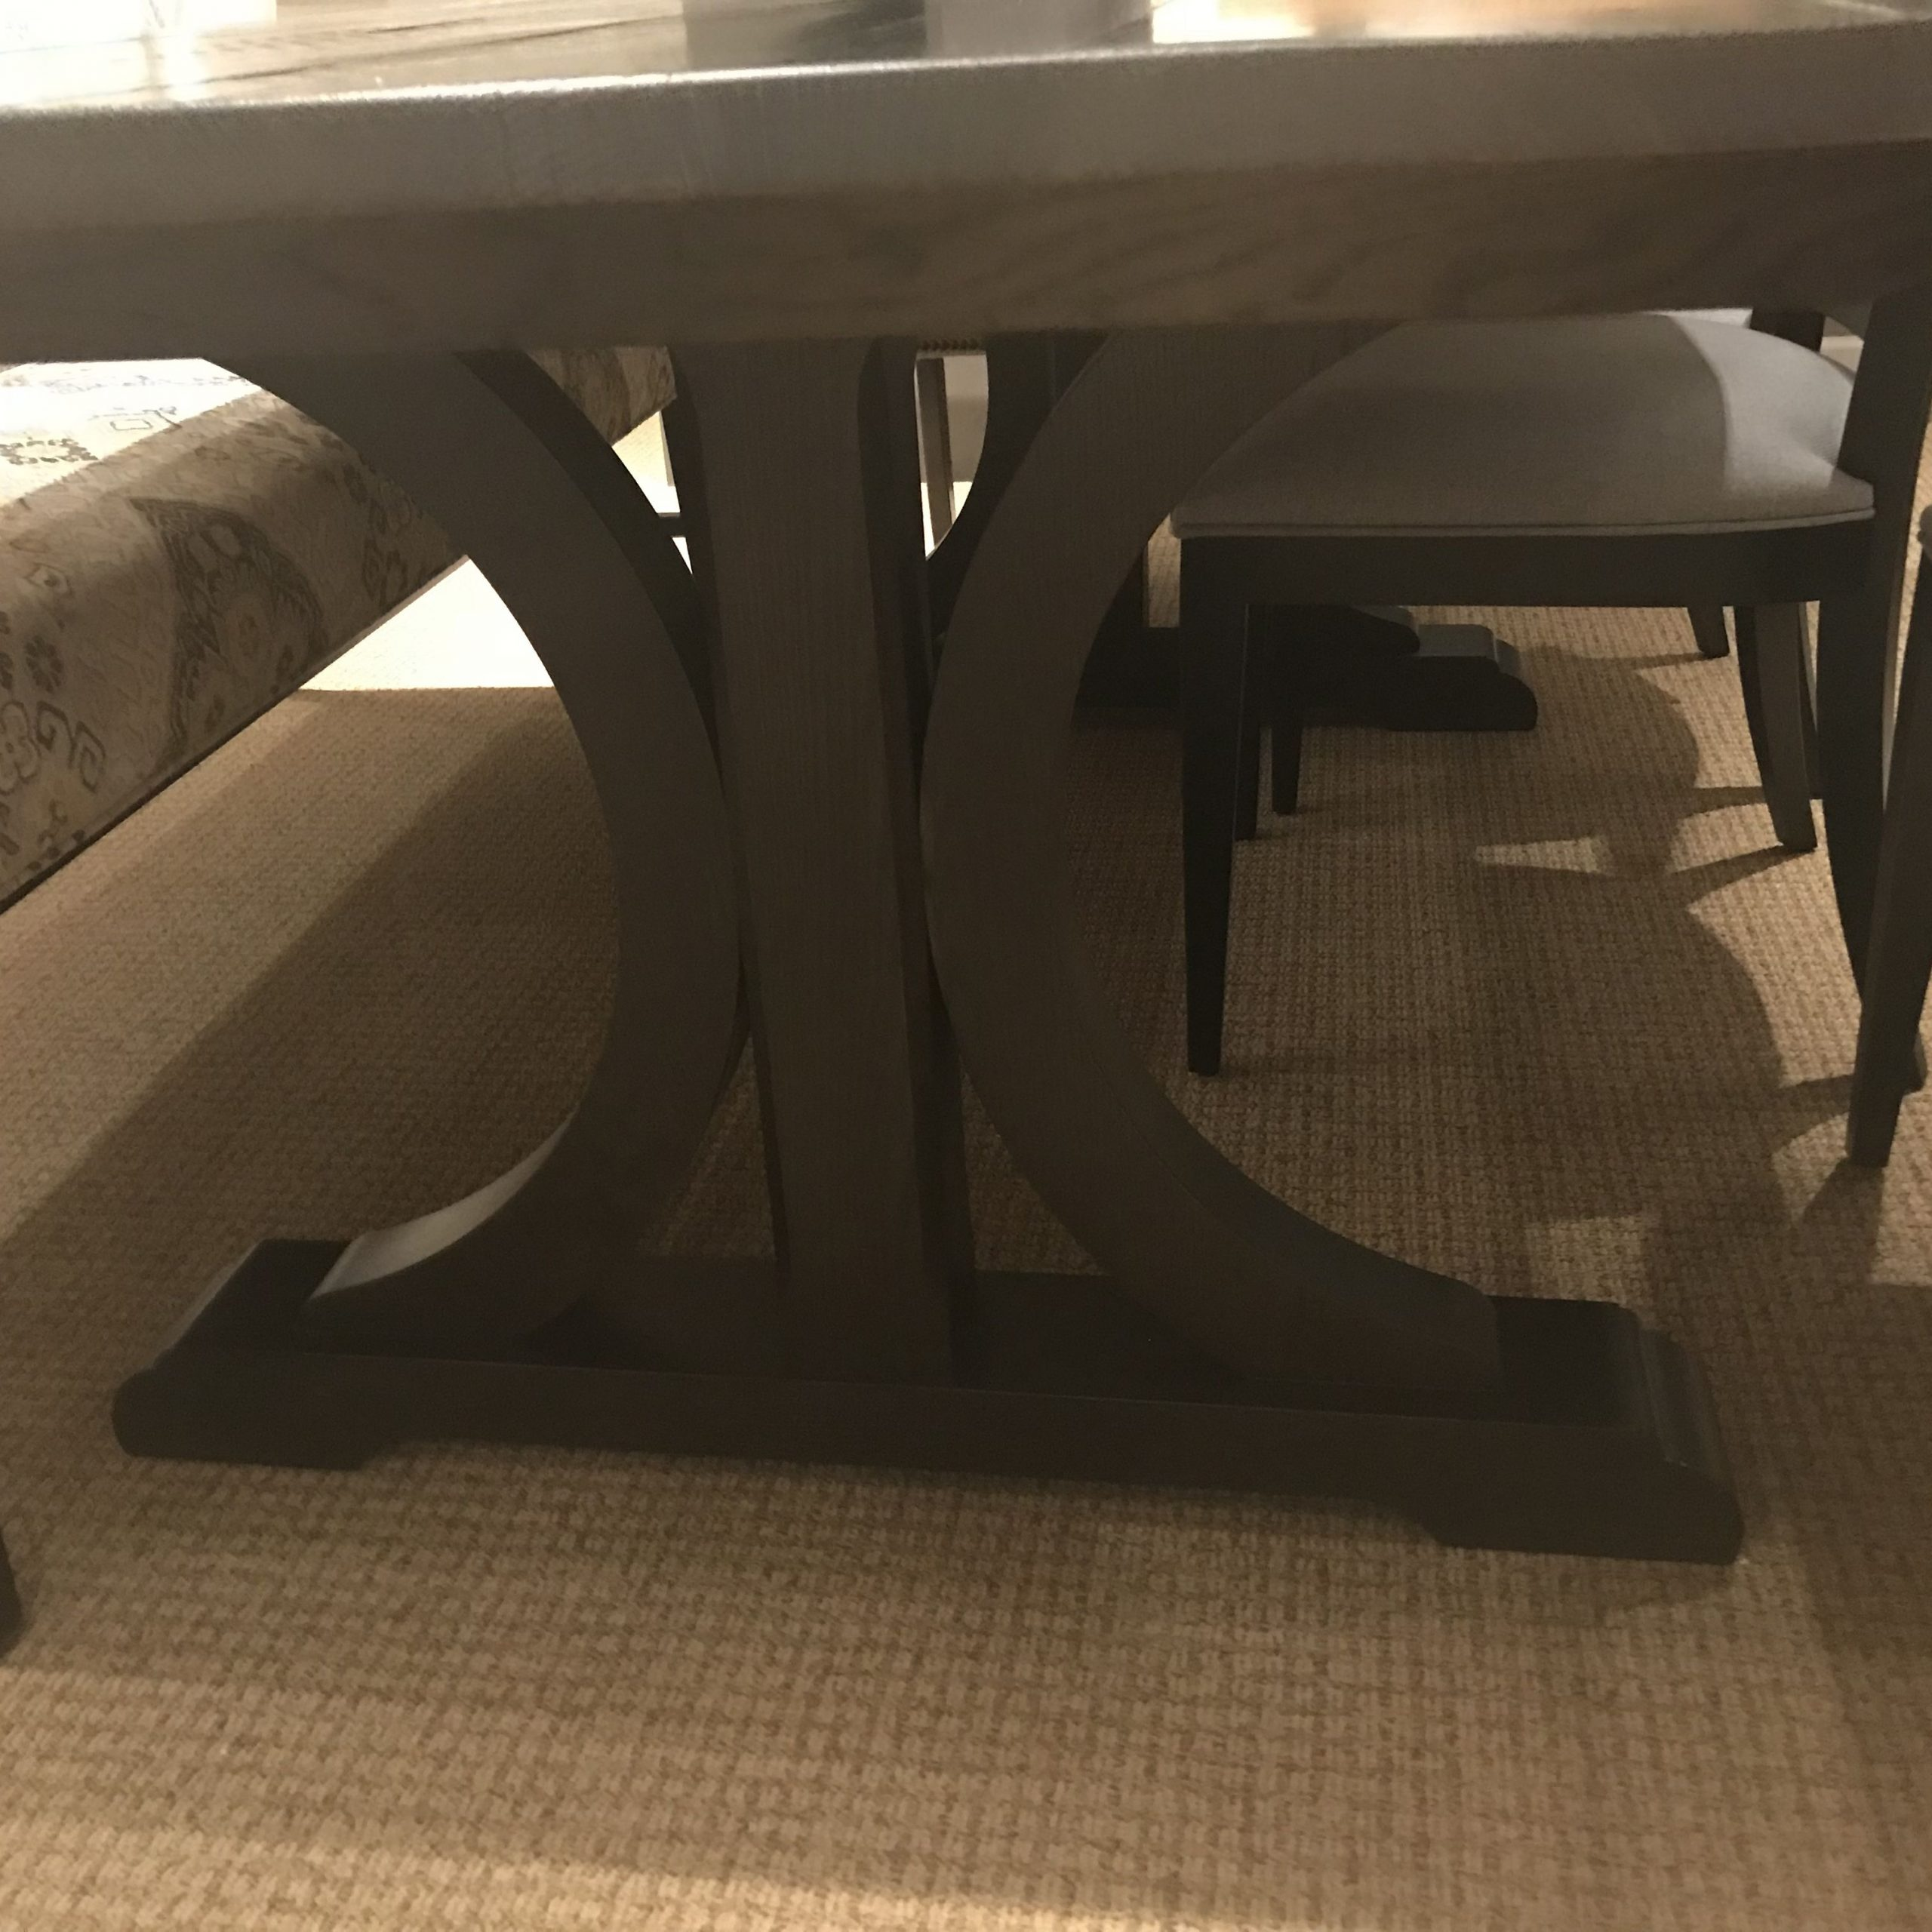 Ethan Allen – Corin Rough Sawn Trestle Extension Dining Pertaining To Current Gray Wash Livingston Extending Dining Tables (View 9 of 25)